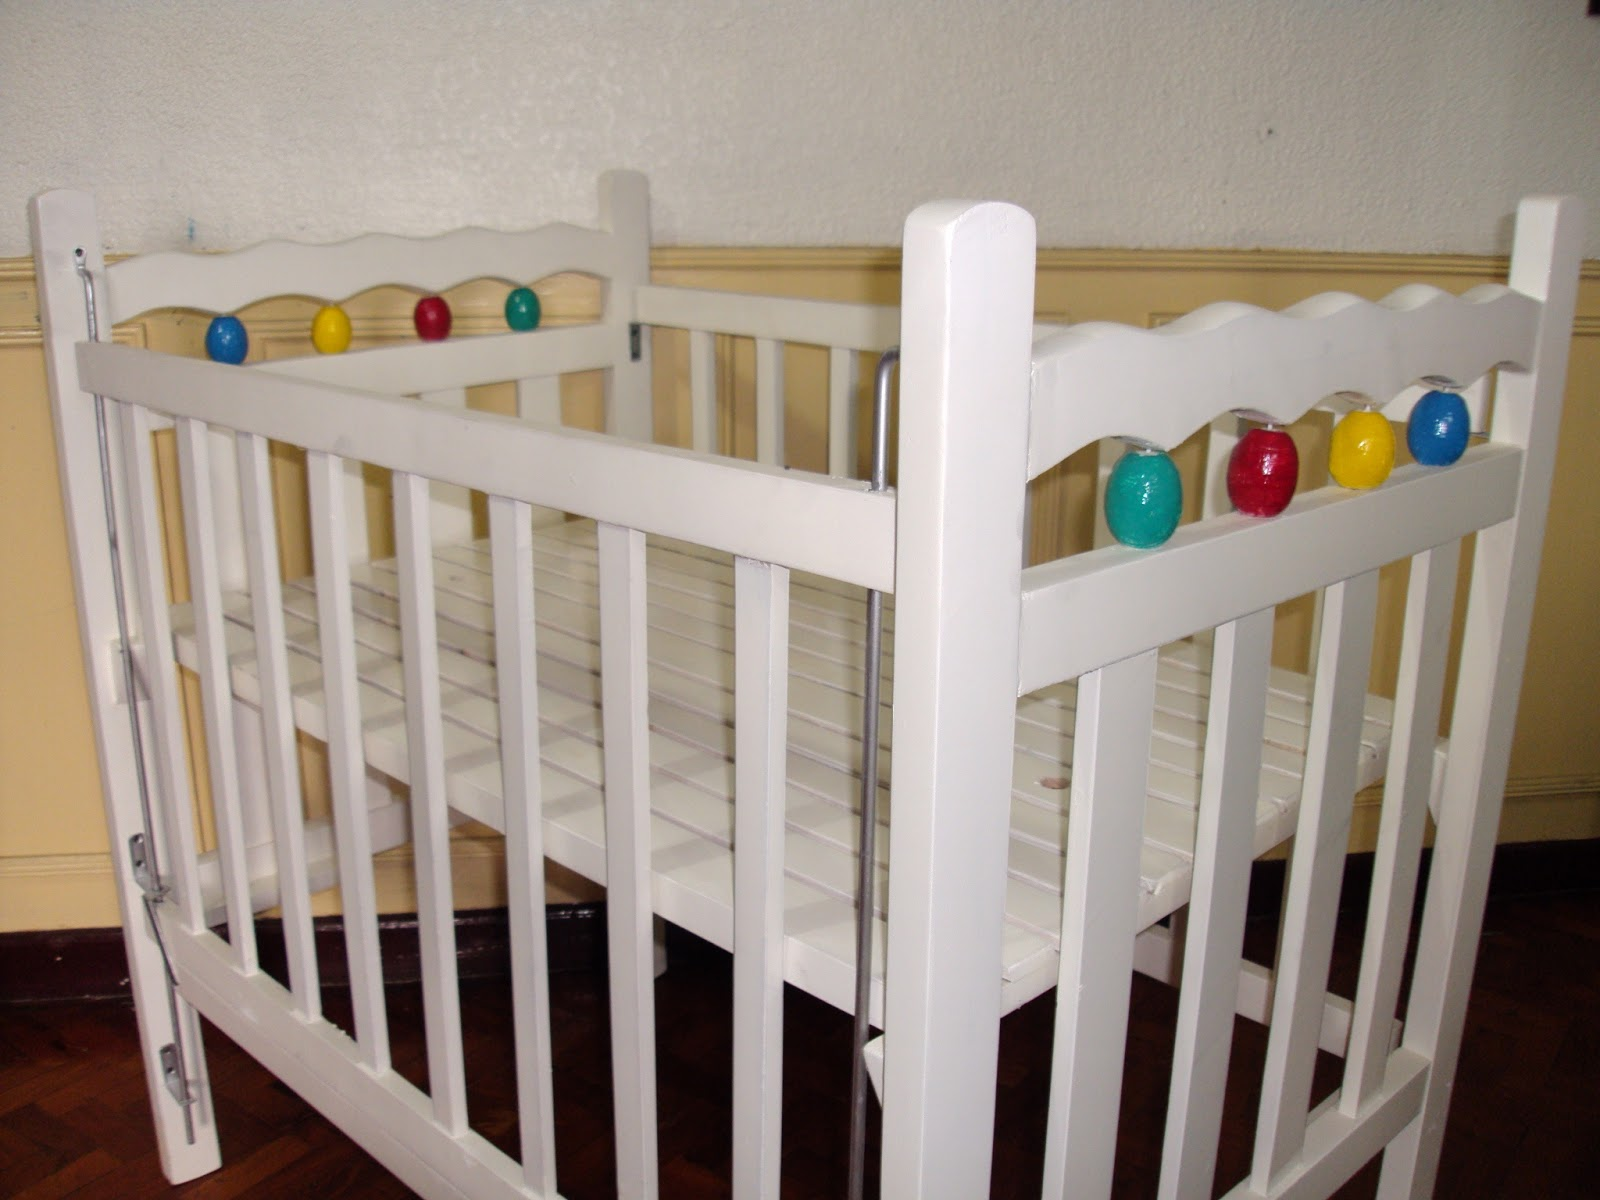 Unfinished crib for sale - Unfinished Crib For Sale 7